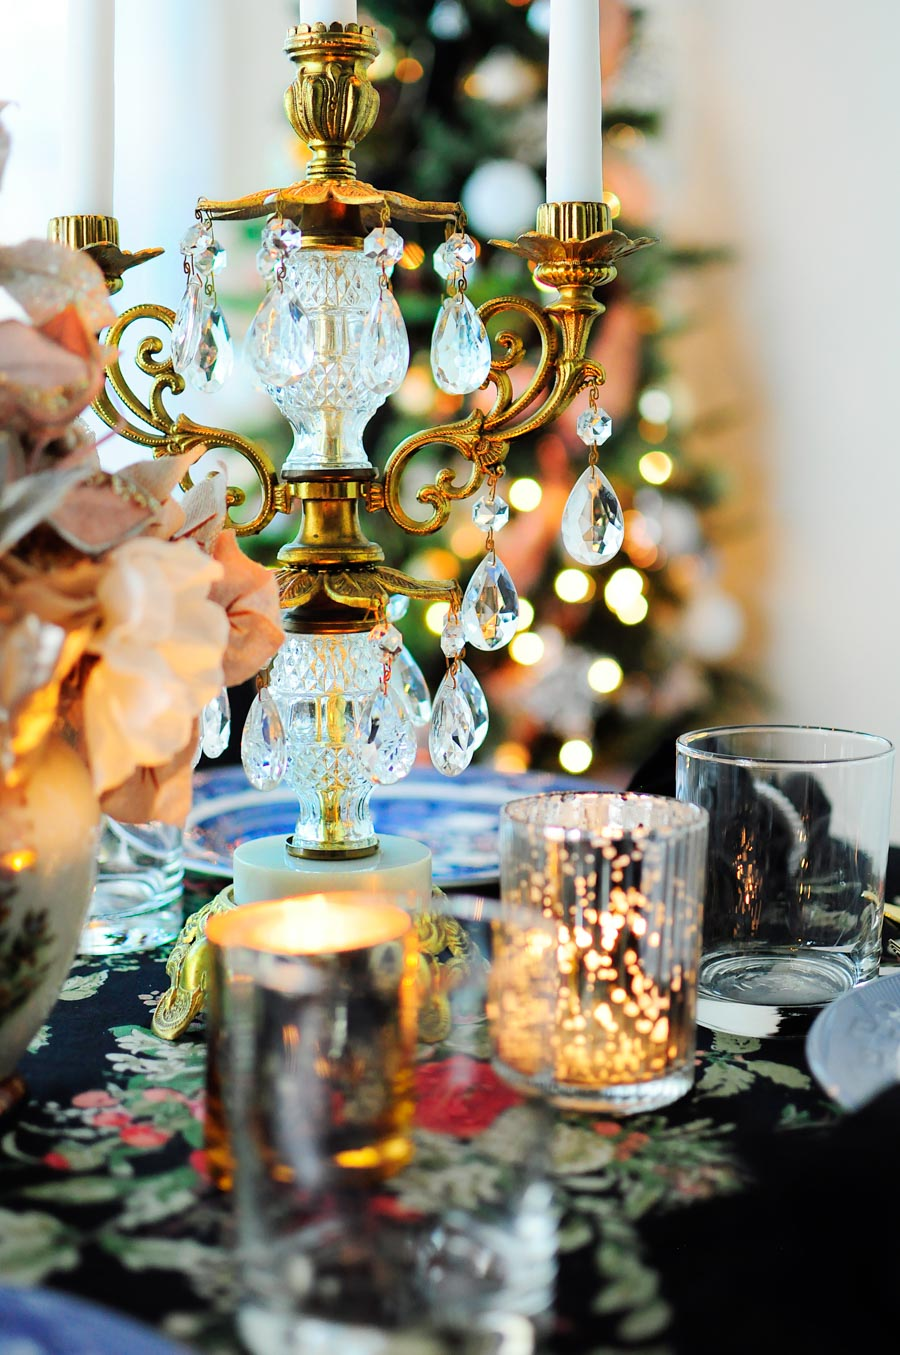 A small dining area is decorated with florals, blush accents, and silver, gold and white ornaments for a truly glam and eclectic holiday space. The chinoiserie touches are fabulous!